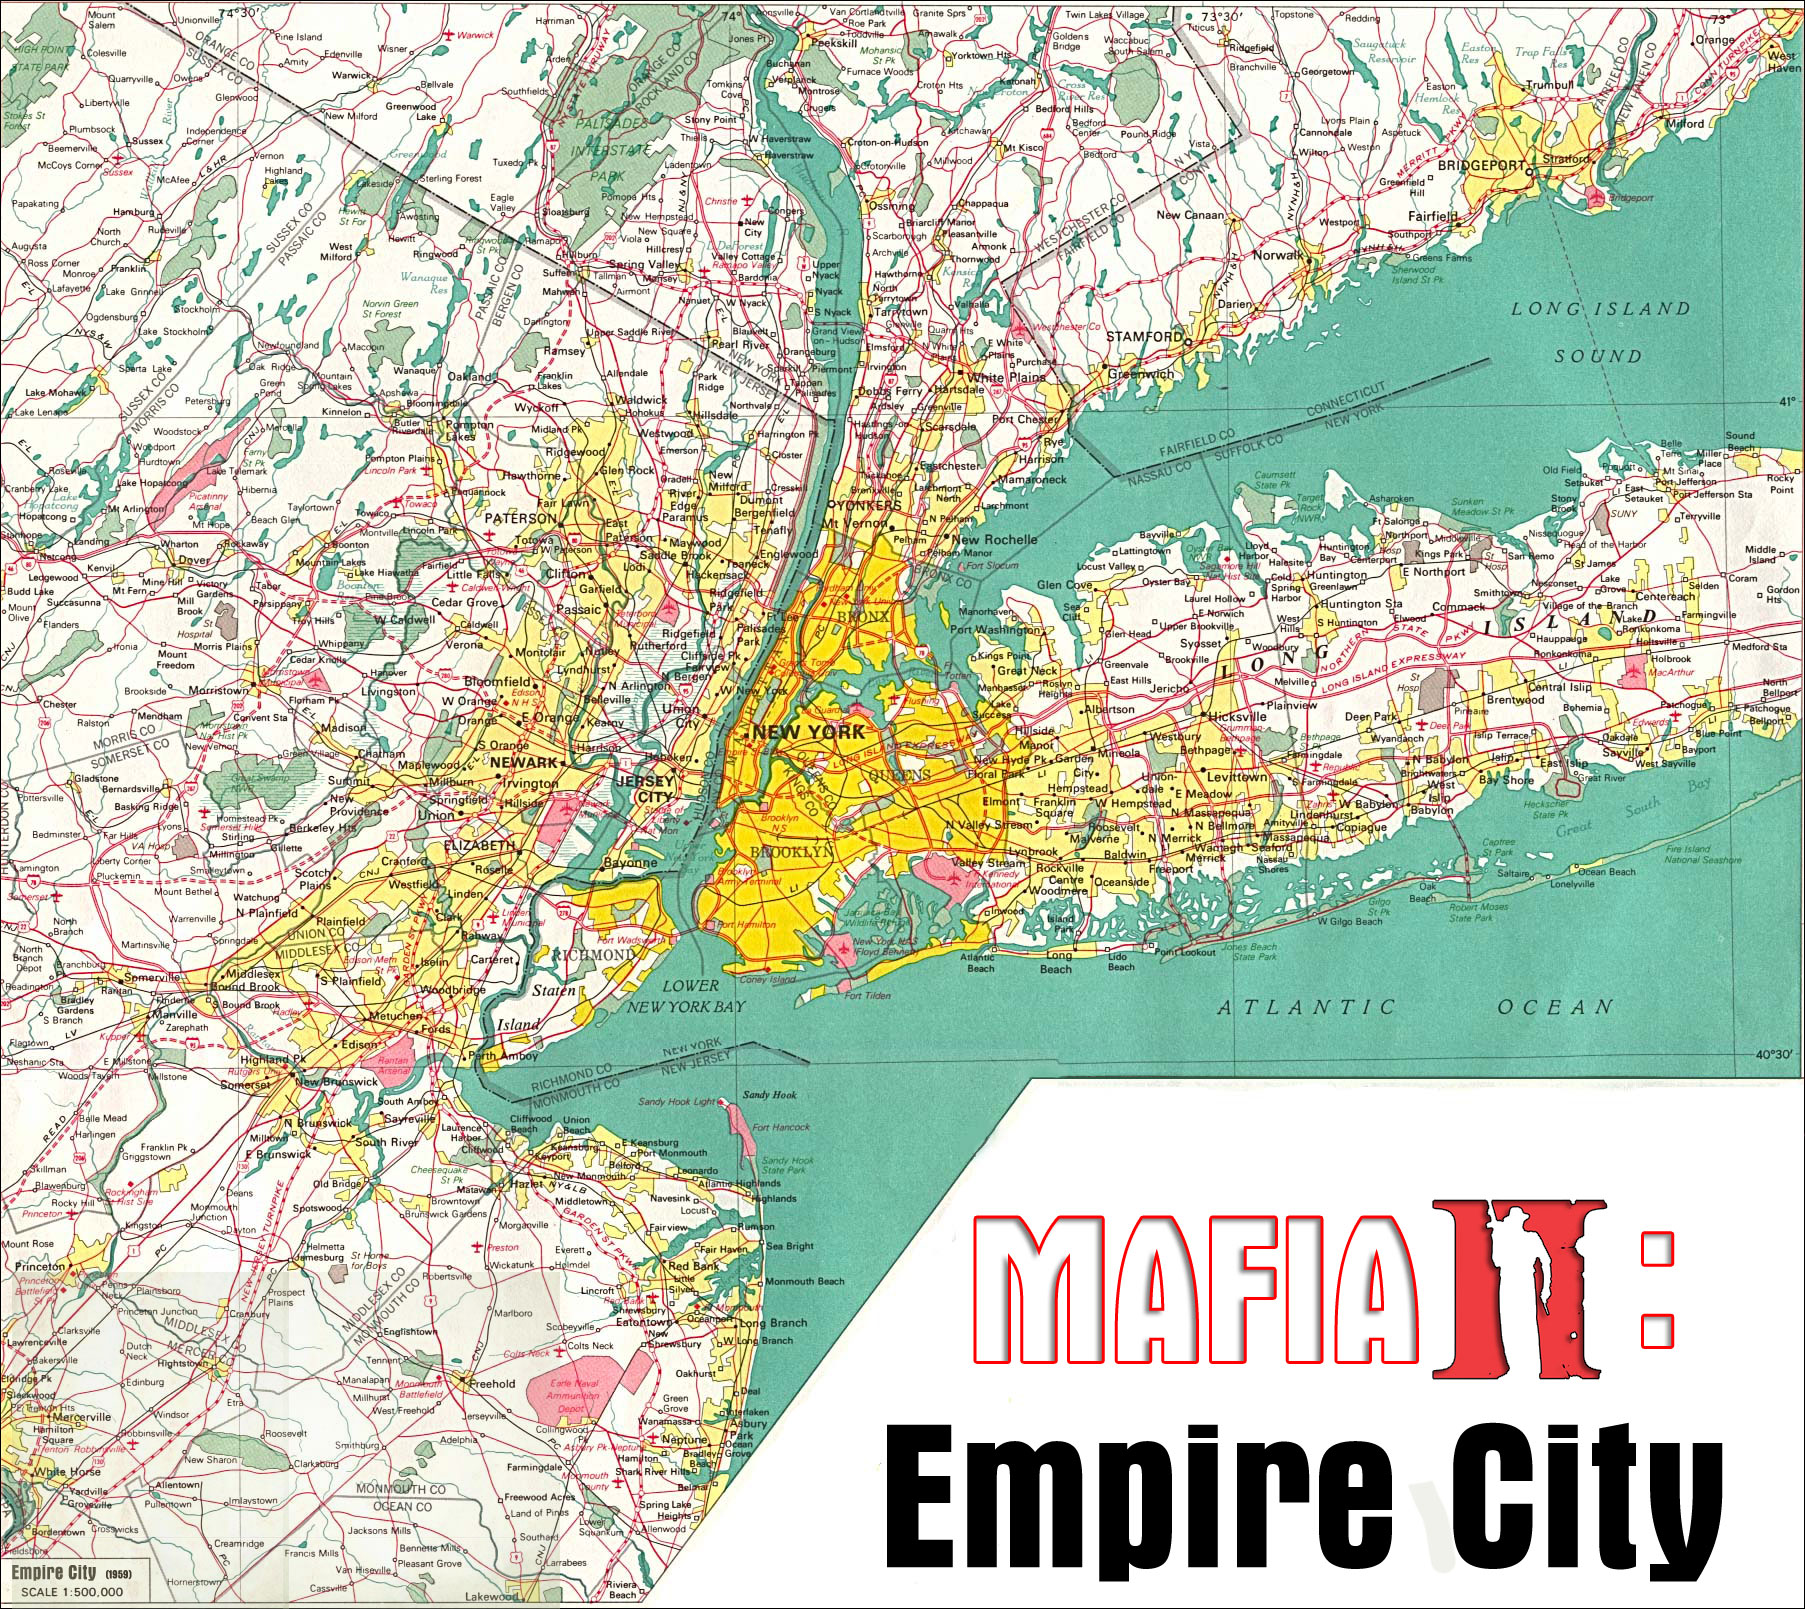 Mafia Maps Related Keywords & Suggestions - Mafia Maps Long ... on call of duty 2 map, the sims 3, mass effect 2, the darkness, lord of the rings online map, mario 2 map, mercenaries 2 world in flames map, mafia ii wanted poster locations, manhunt 2 map, hearts of iron 3 map, just cause 2 map, metal gear solid 2 map, grand theft auto iii, la noire map, the getaway, dragon's dogma map, halo 2 map, neverwinter nights 2 map, the godfather 2 map, red dead revolver, mafia 3 trailer, kyrat far cry 4 map, fallen angel sacred 2 map, medal of honor, gta 4 map, gta 5 map, saints row 2 map, the elder scrolls v: skyrim, the godfather: the game, scarface: the world is yours, far cry 2, mafia: the city of lost heaven, red dead redemption,